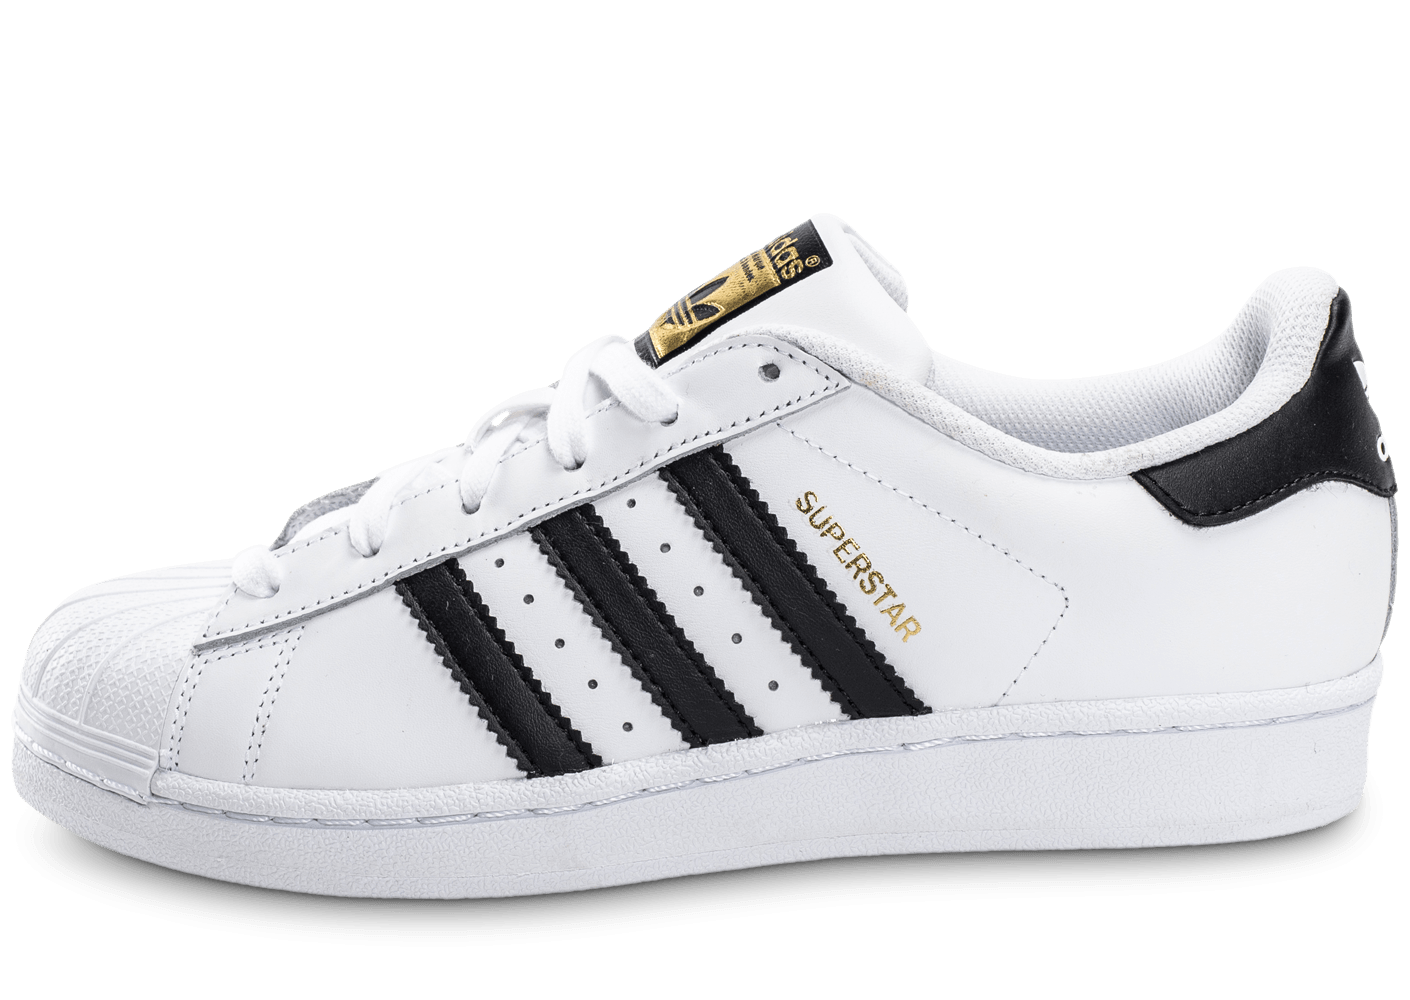 adidas Superstar Foundation junior blanc noir - Chaussures adidas - Chausport